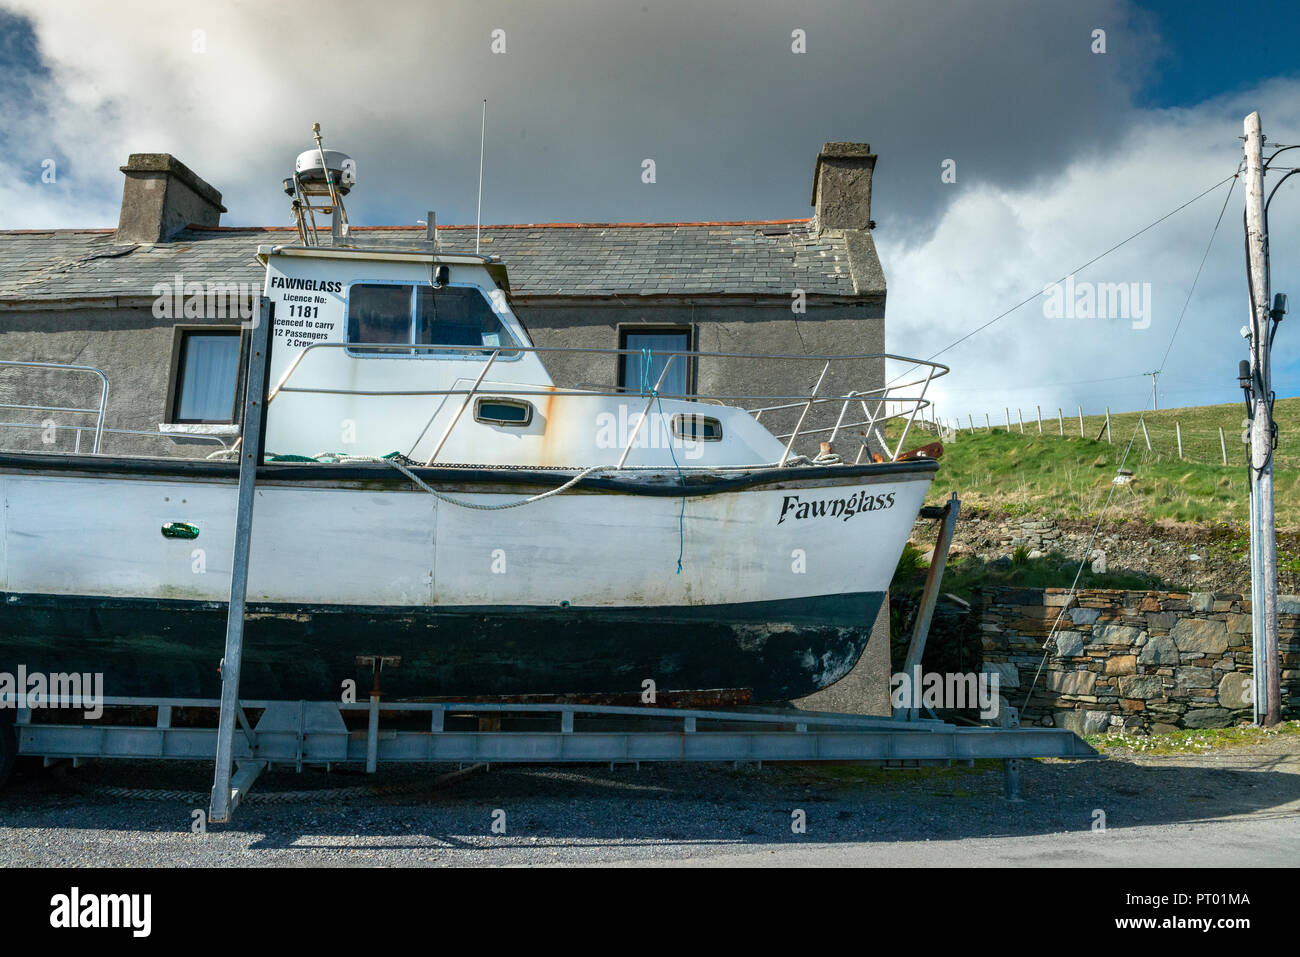 Ireland, Inish Boffin Island, Boat in dry dock waiting to be repaired and painted. - Stock Image